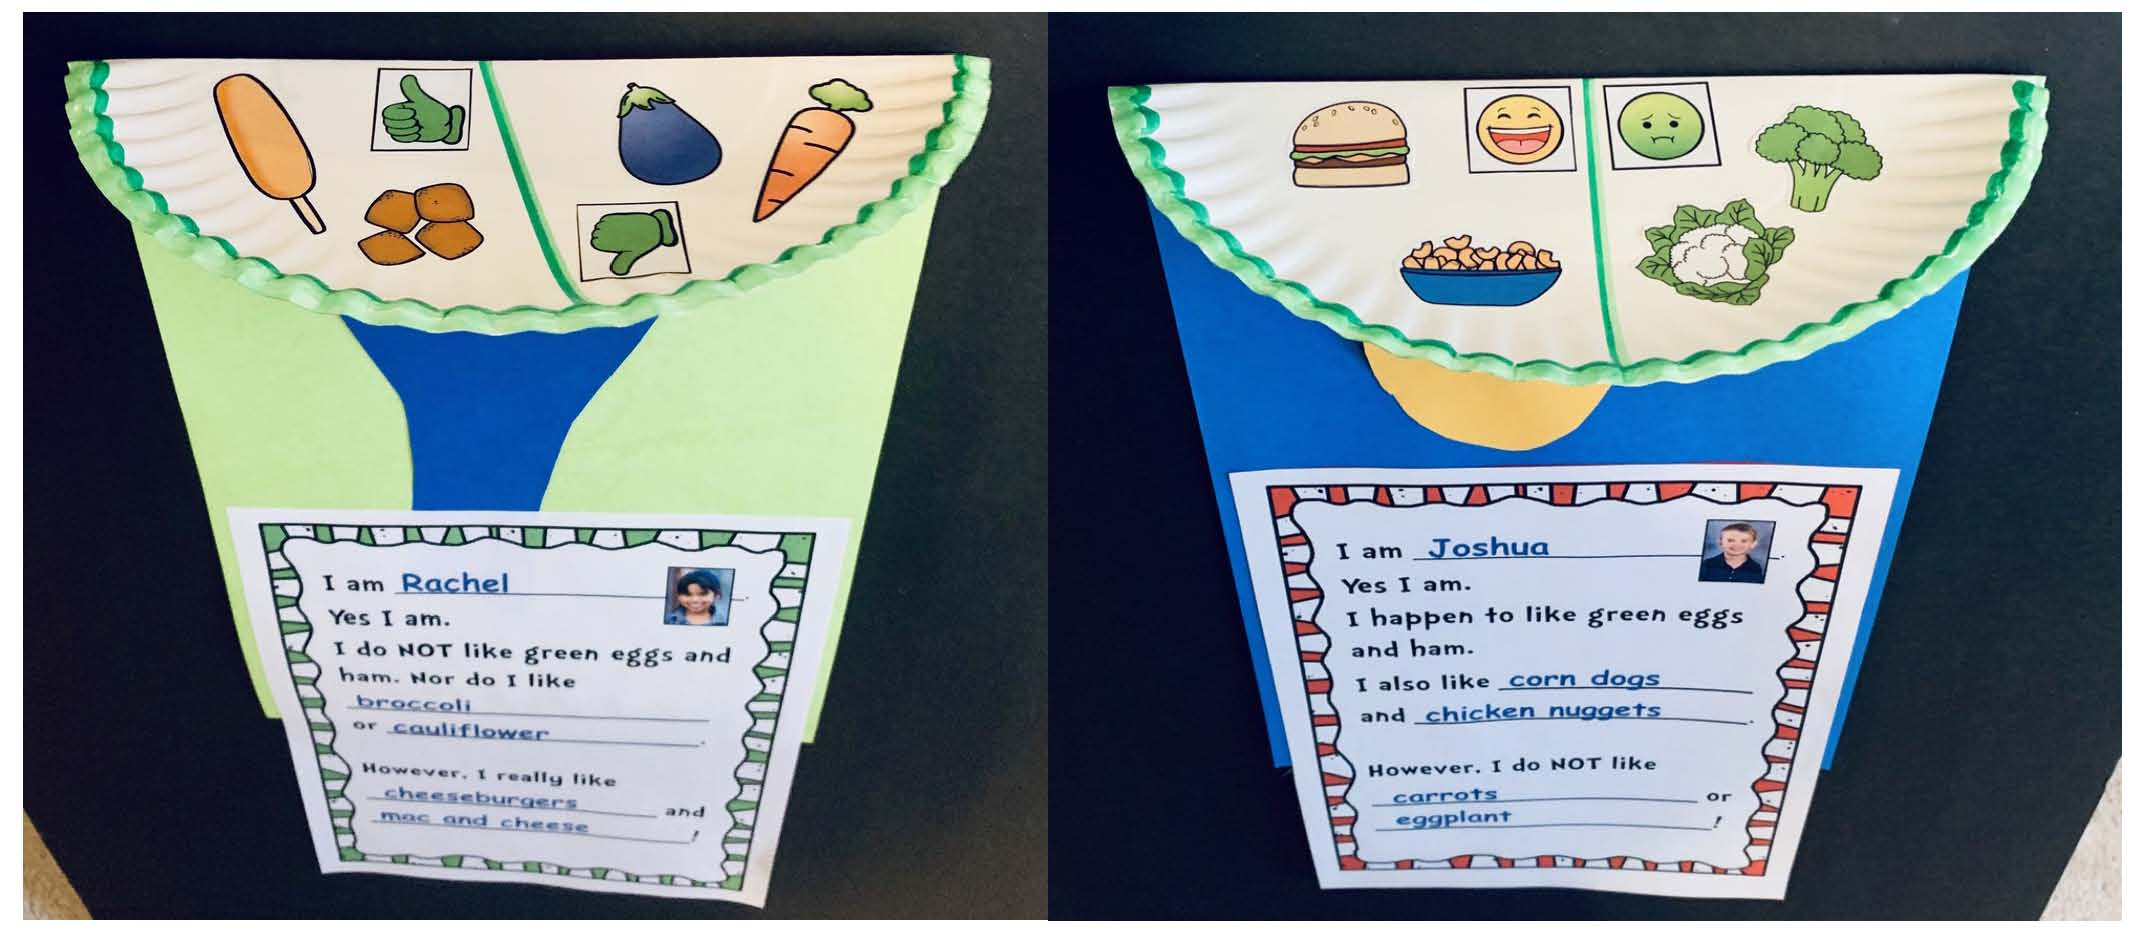 paper plate green eggs and ham craft, green eggs and ham writing prompt worksheet, green eggs and ham graph, dr. seuss activities, dr. seuss crafts, green eggs and ham activities, green eggs and ham crafts, march writing prompts, read across america bulletin boards, seuss bulletin boards, seuss writing prompts